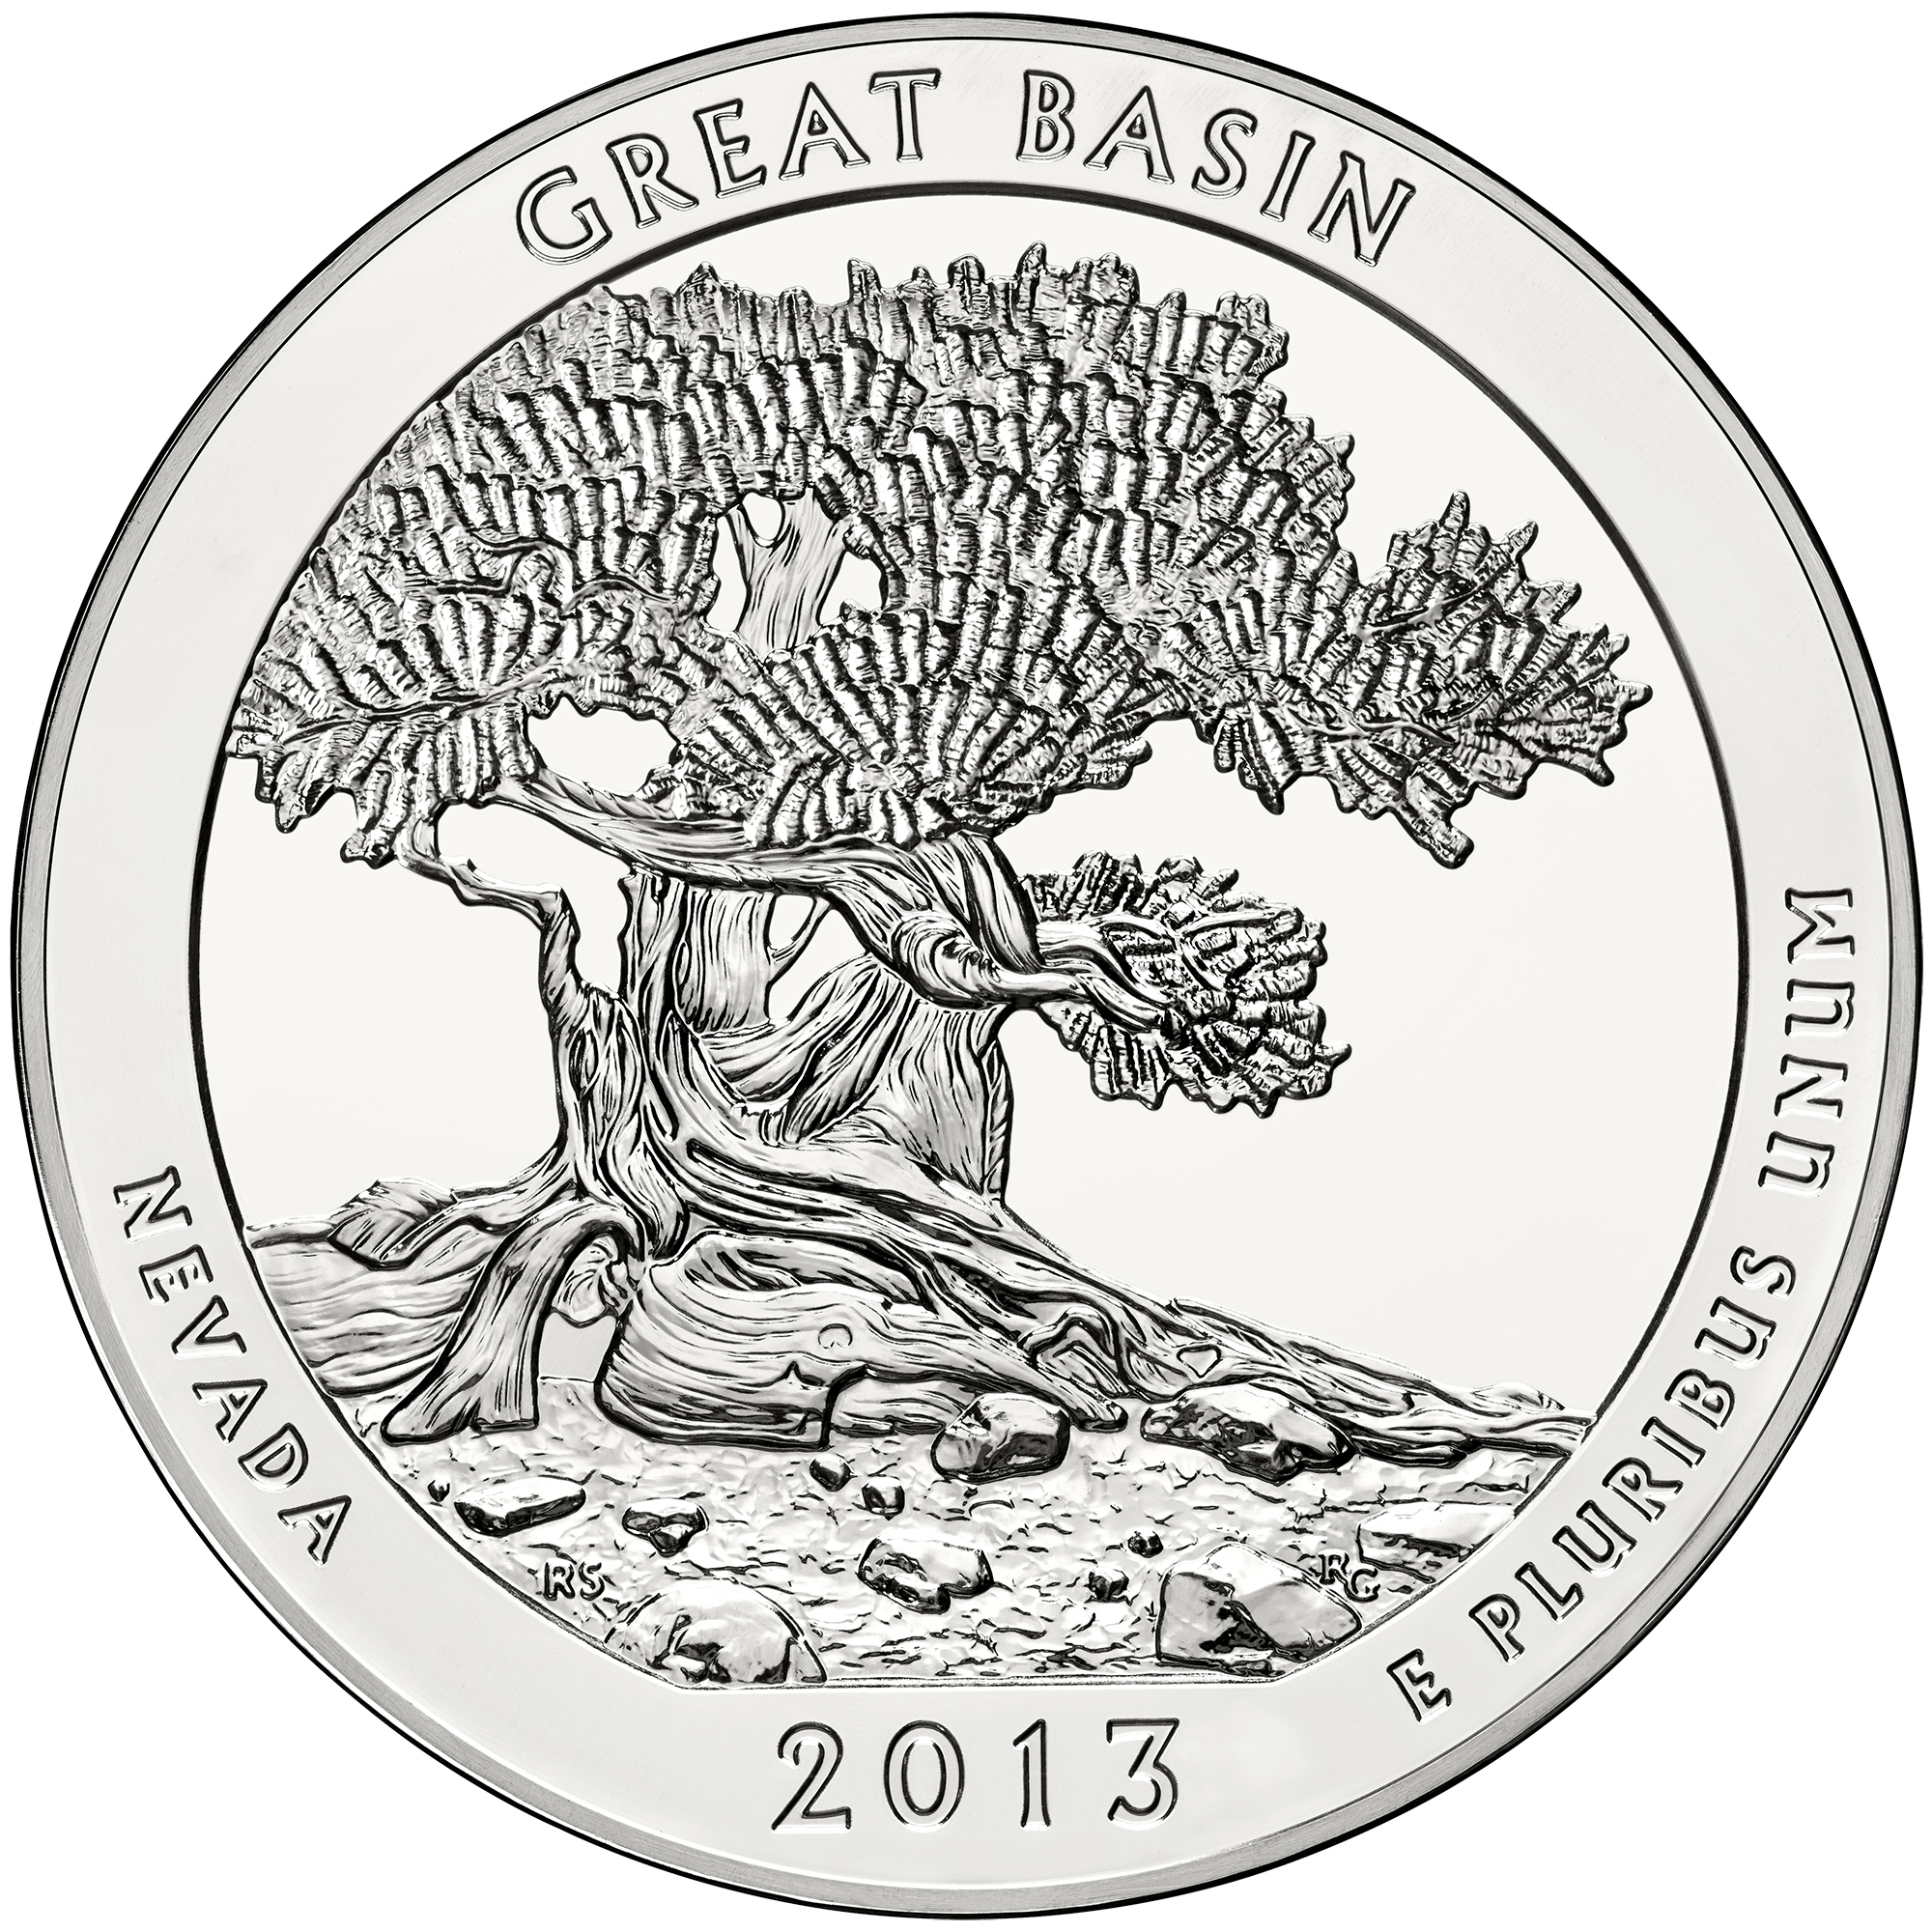 2013 America The Beautiful Quarters Five Ounce Silver Bullion Coin Great Basin Nevada Reverse